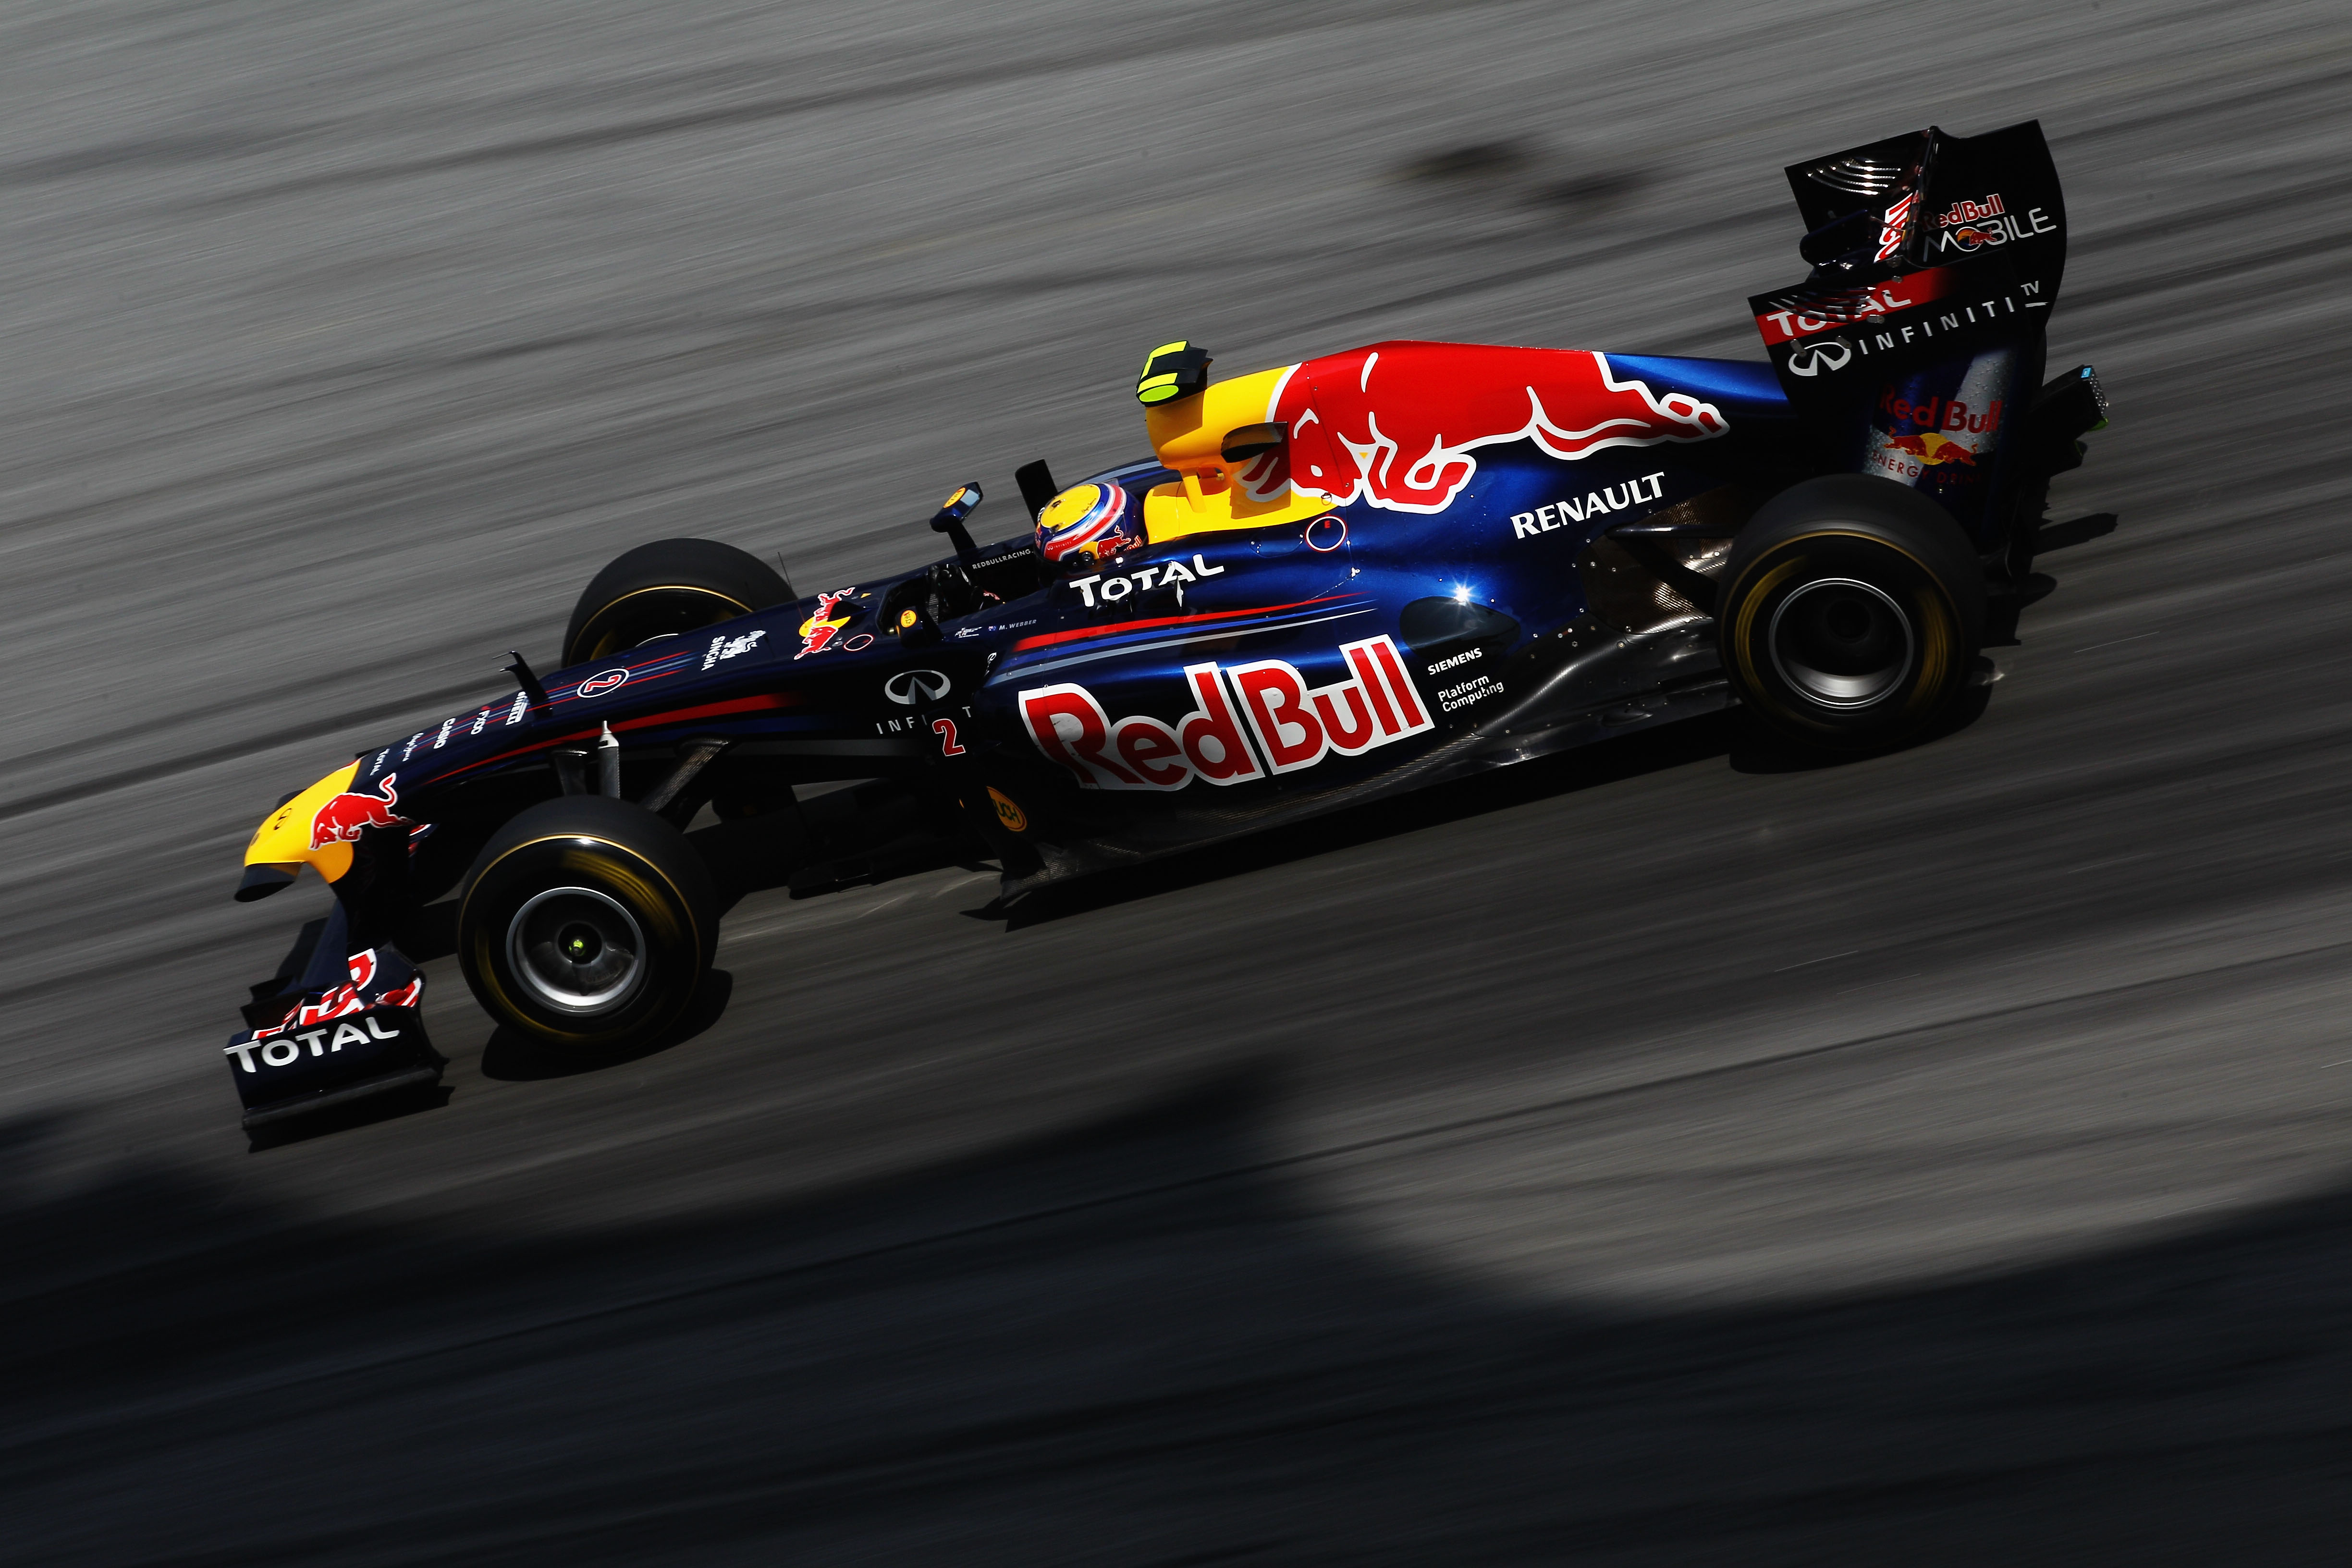 f1 malaysian grand prix practice red bull racing. Black Bedroom Furniture Sets. Home Design Ideas